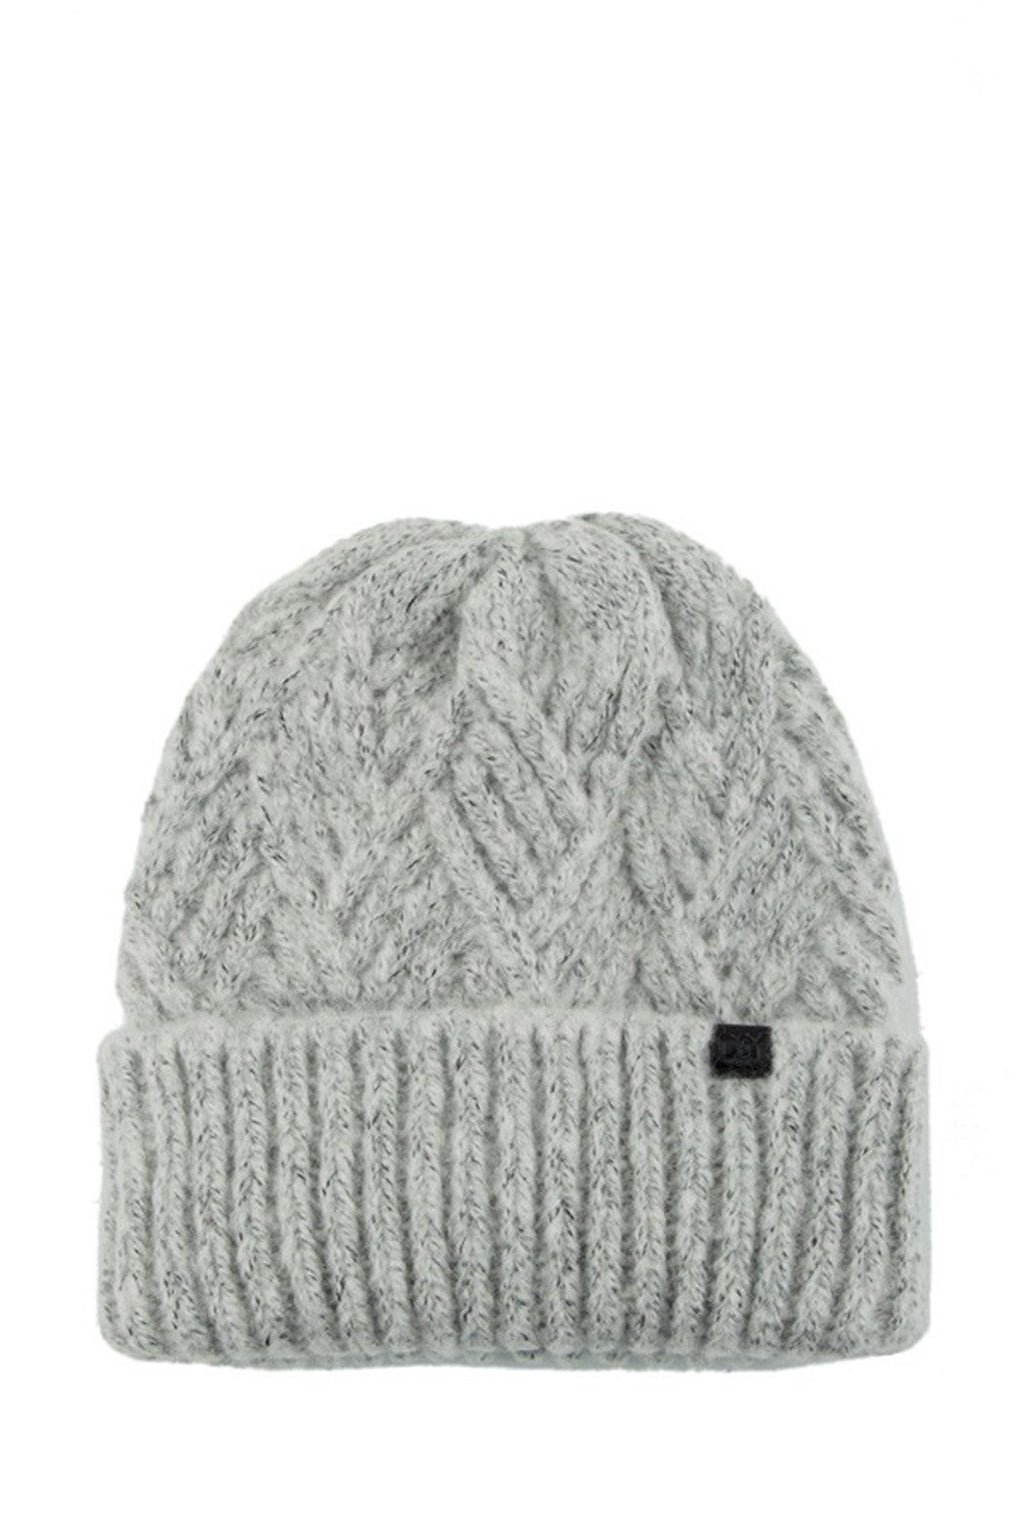 EcoVibe Style - Diamond Basket Weave Beanie in Grey, EcoVibe | Grey